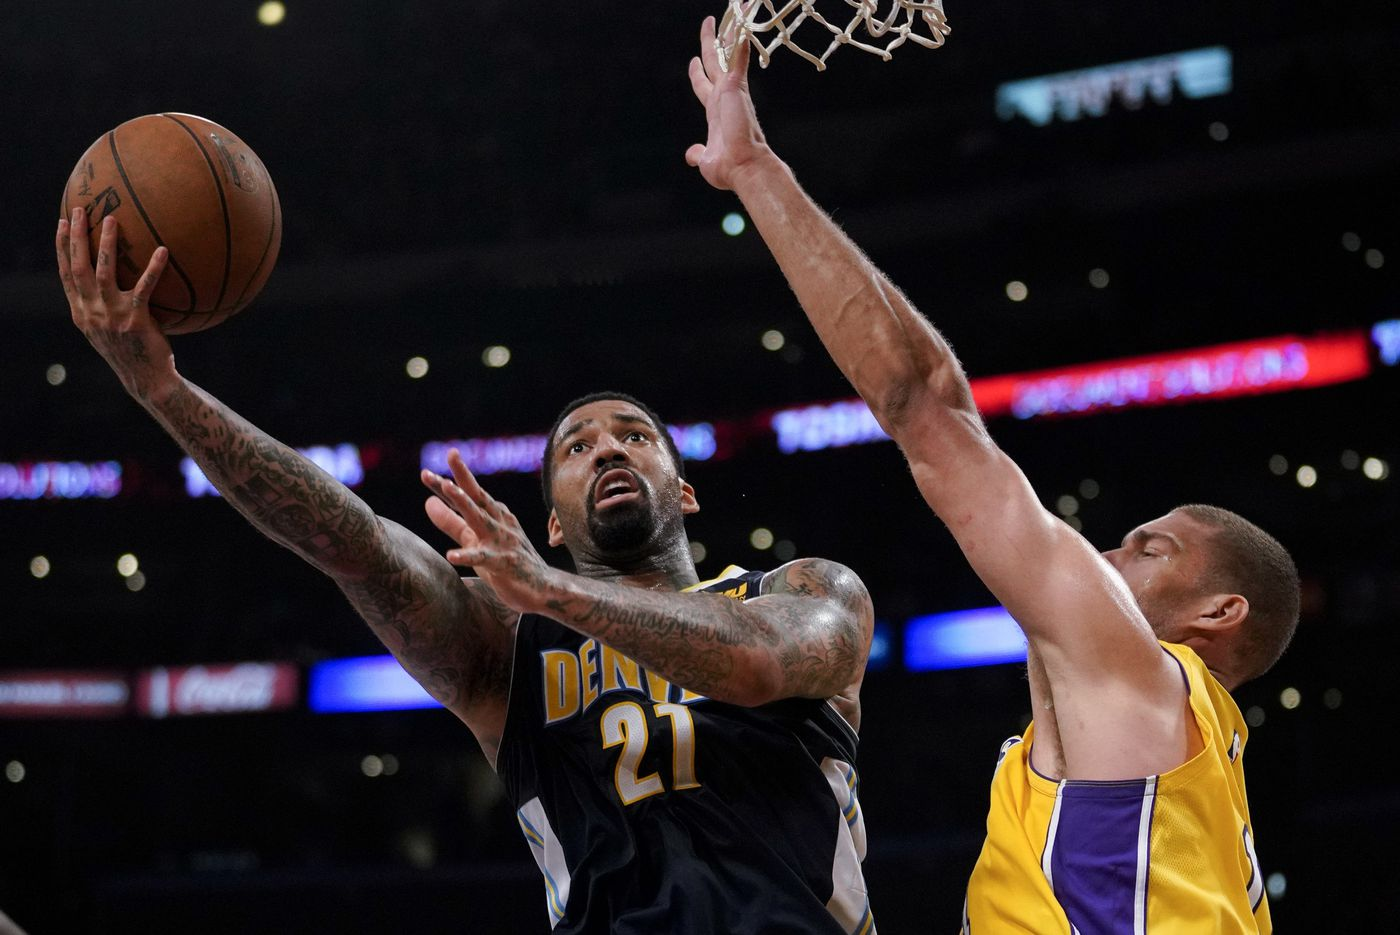 Sixers' Wilson Chandler trade is where 'The Process' meets 'The Reality' | David Murphy